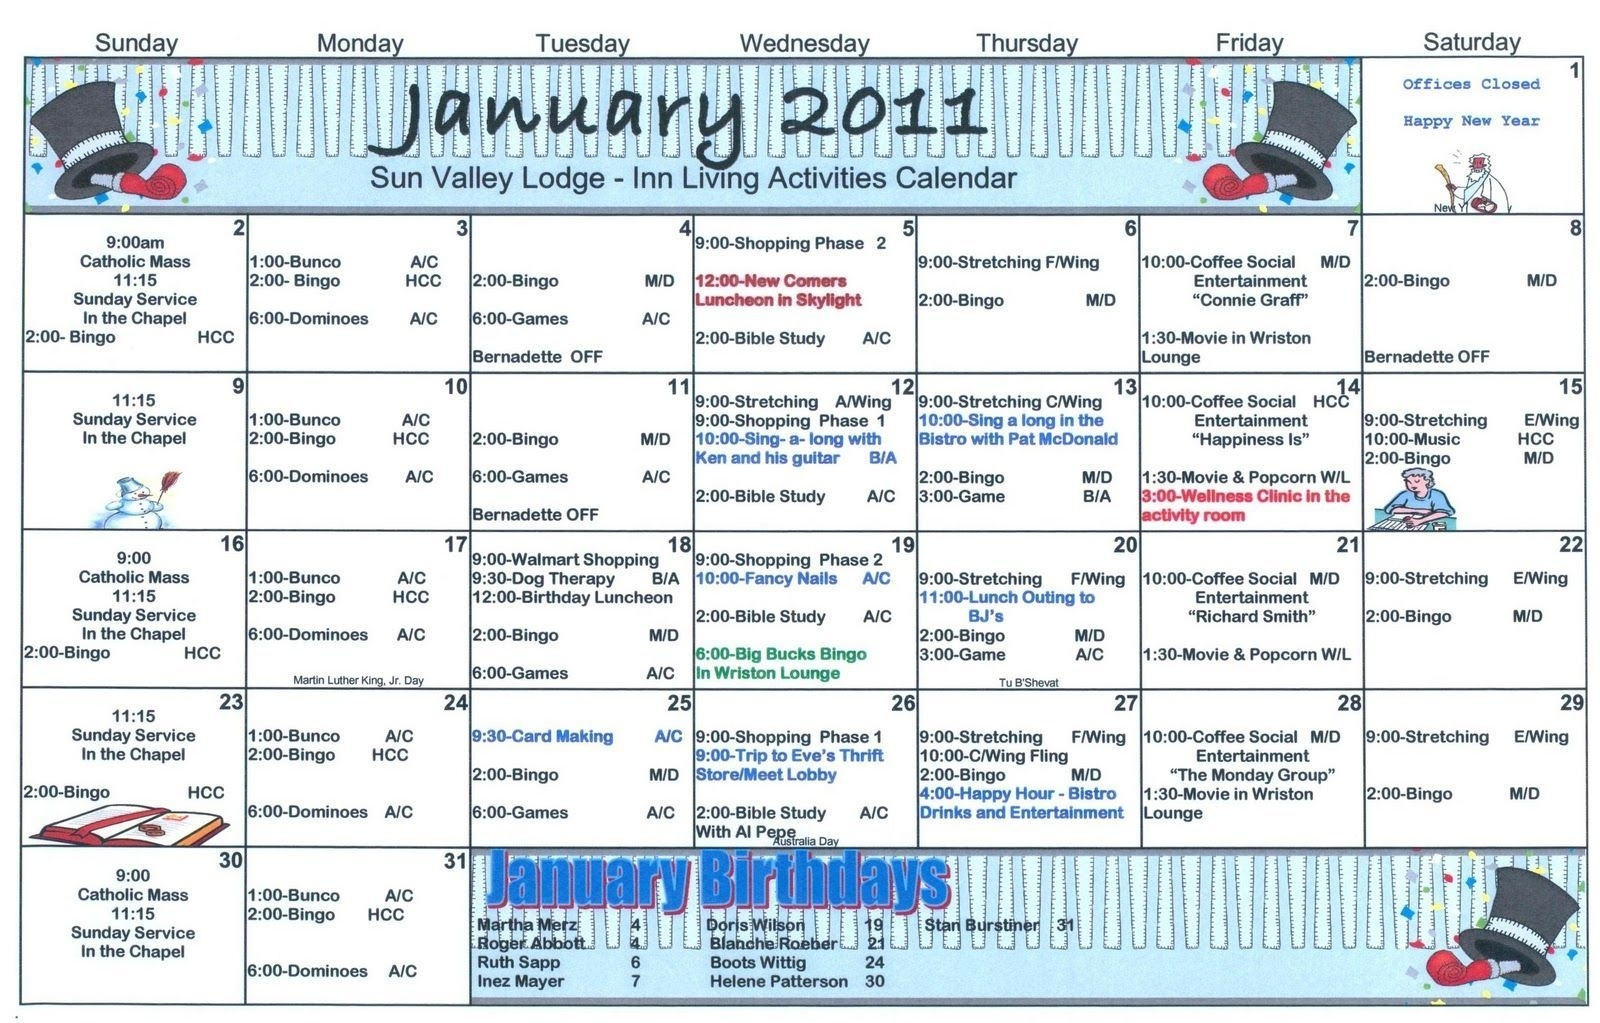 Assisted Living Activity Calendar Format In 2020 | Assisted